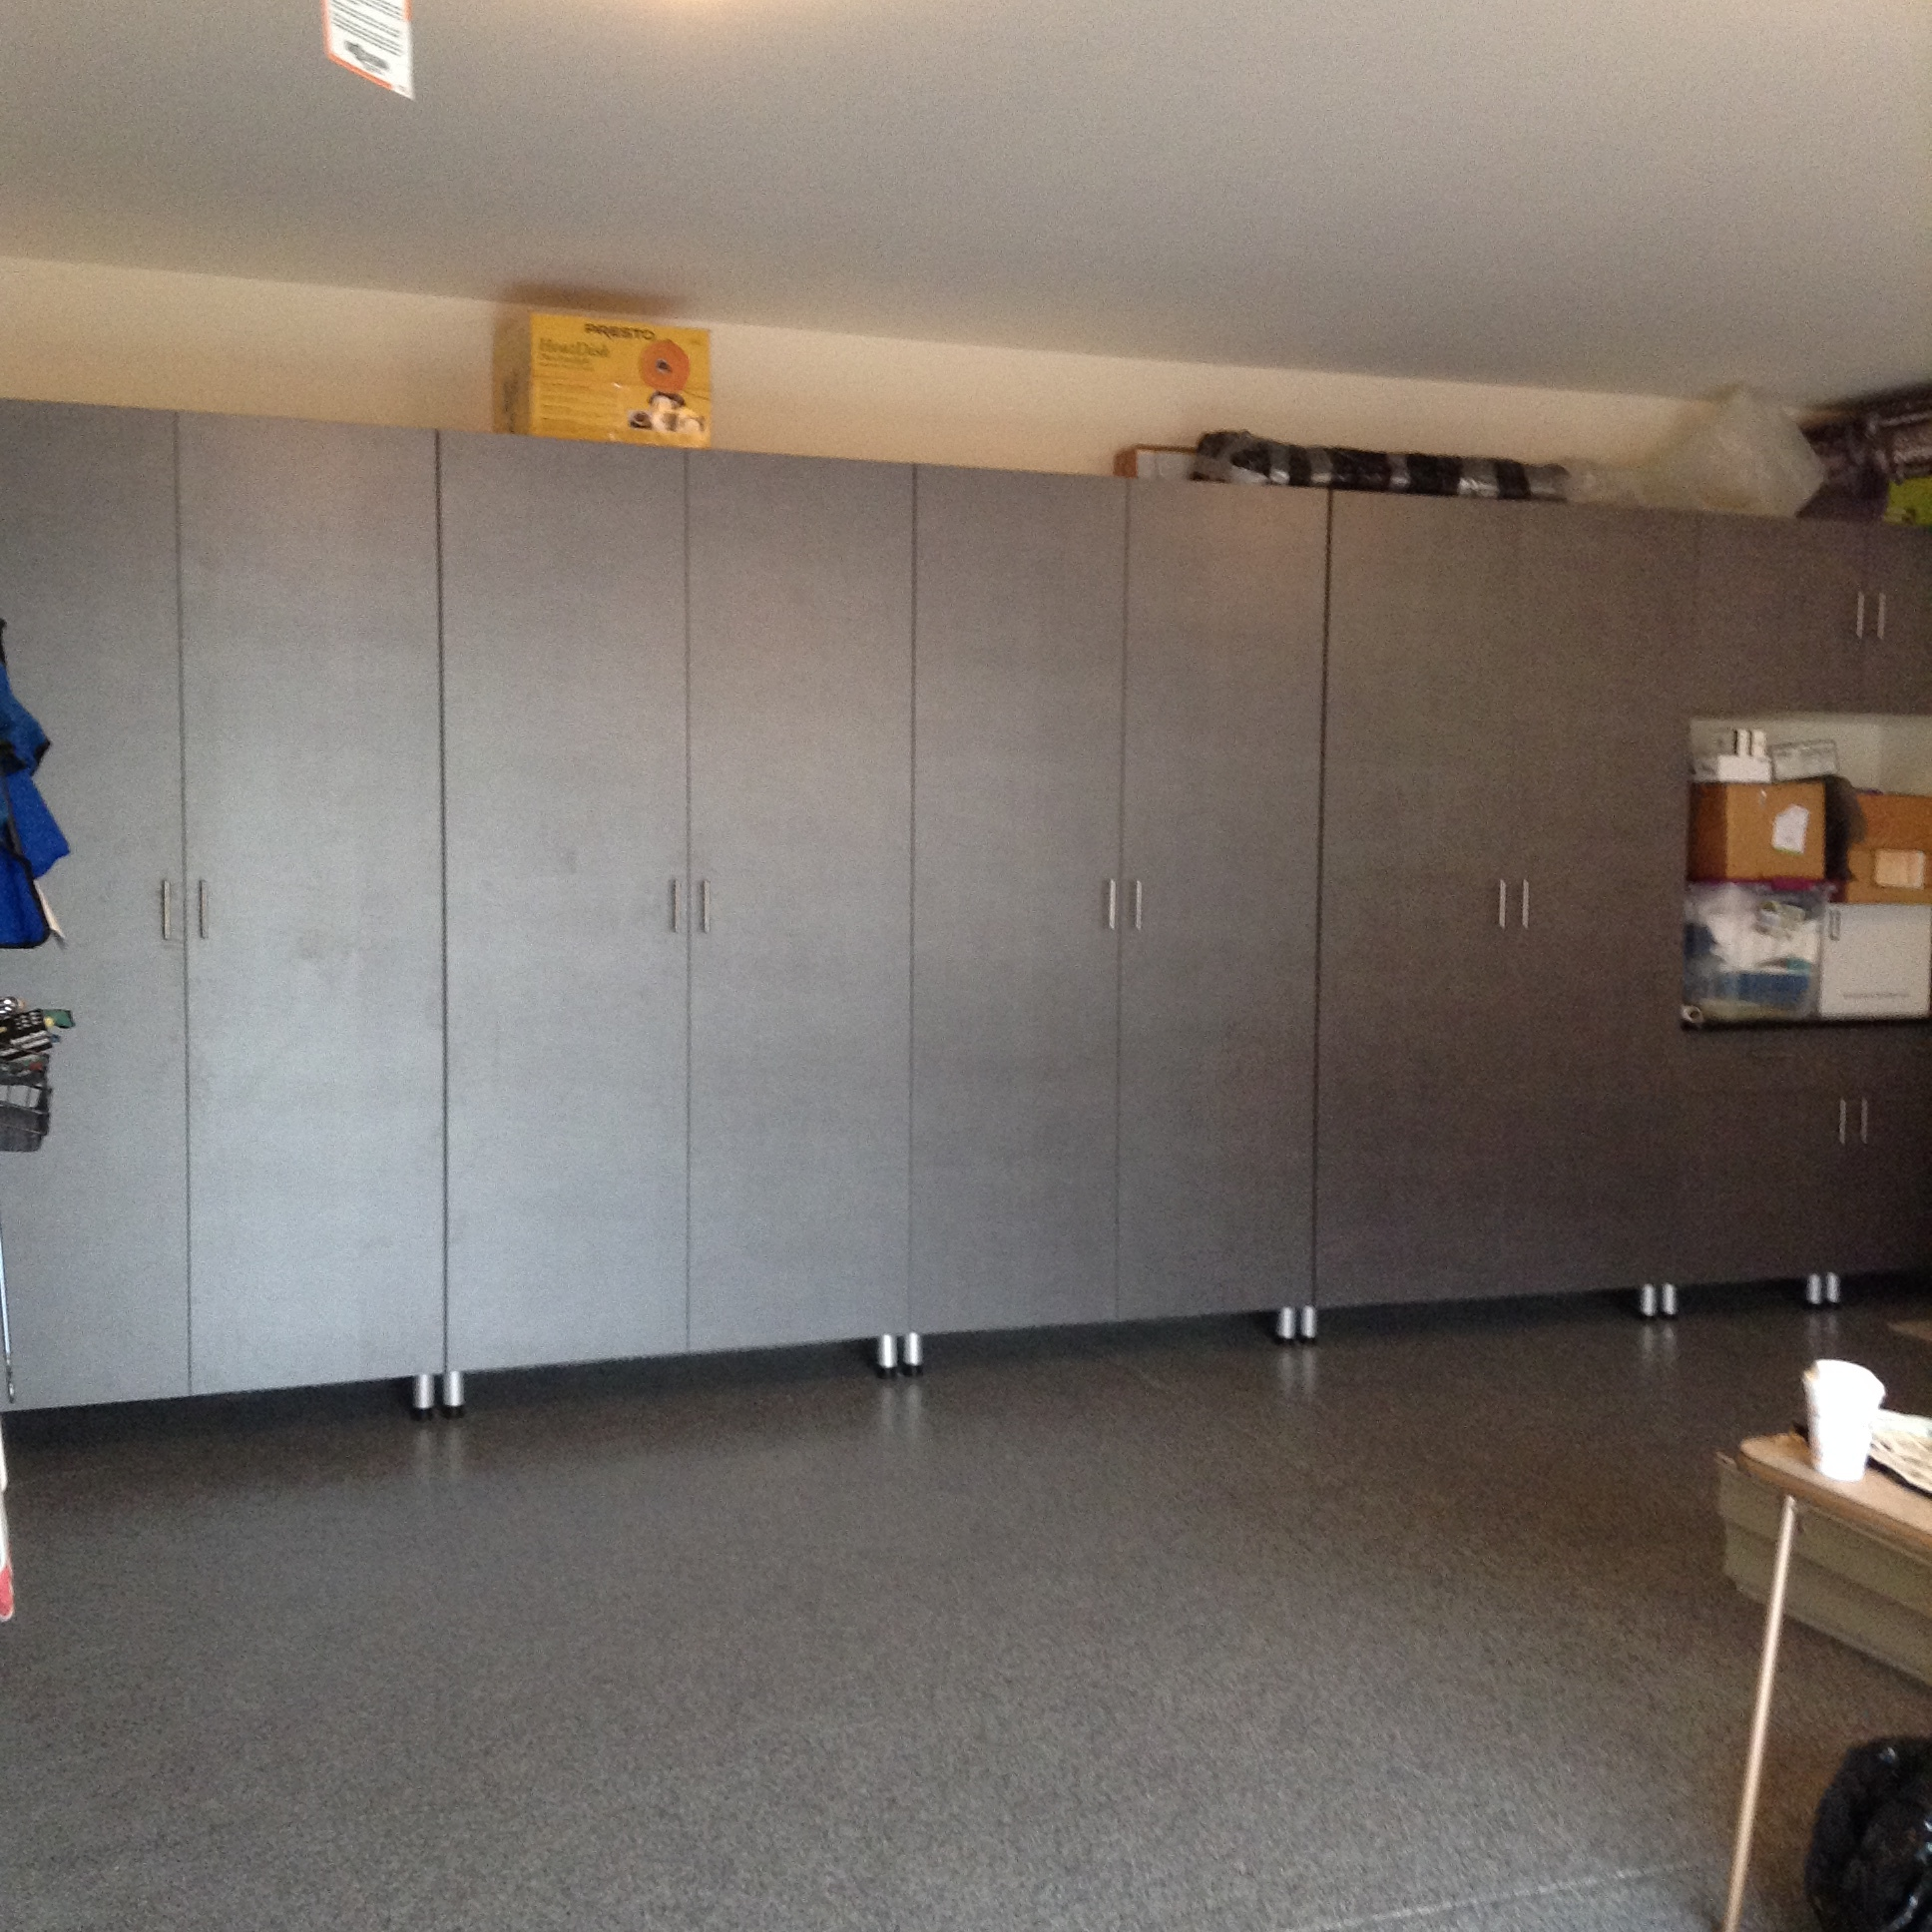 Finished projects-garage cabinets and epoxy floor